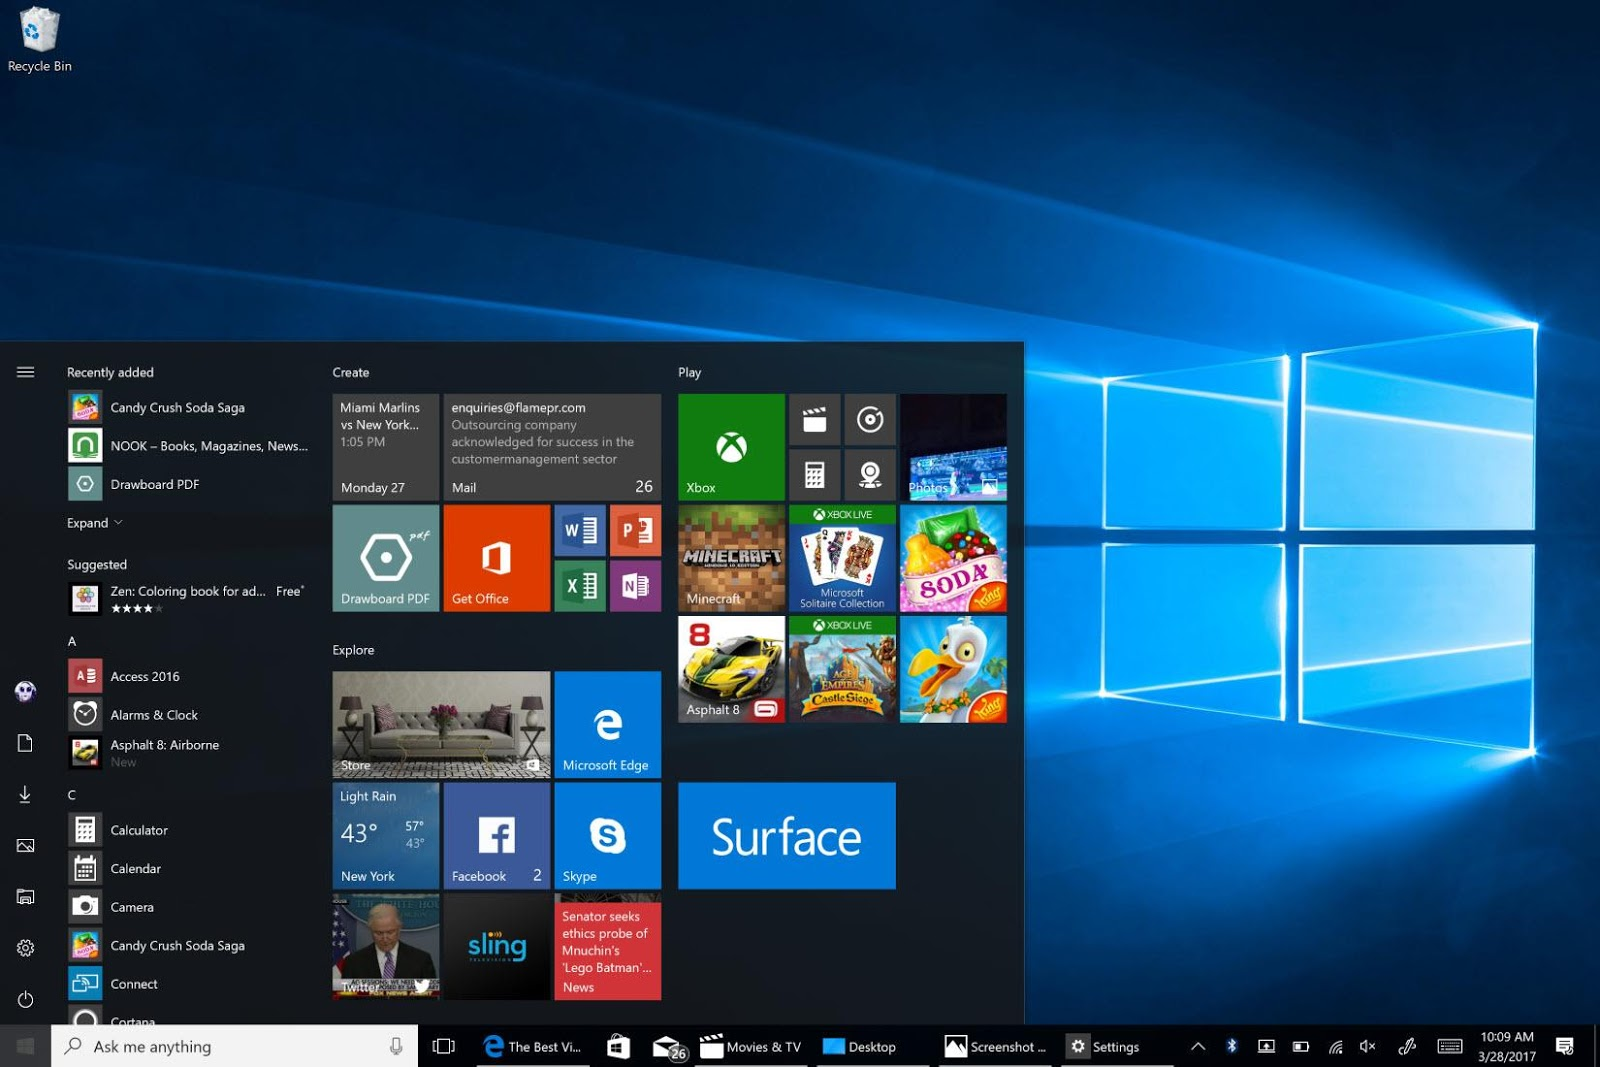 Windows 10 Start Screen to Increase Internet Speed